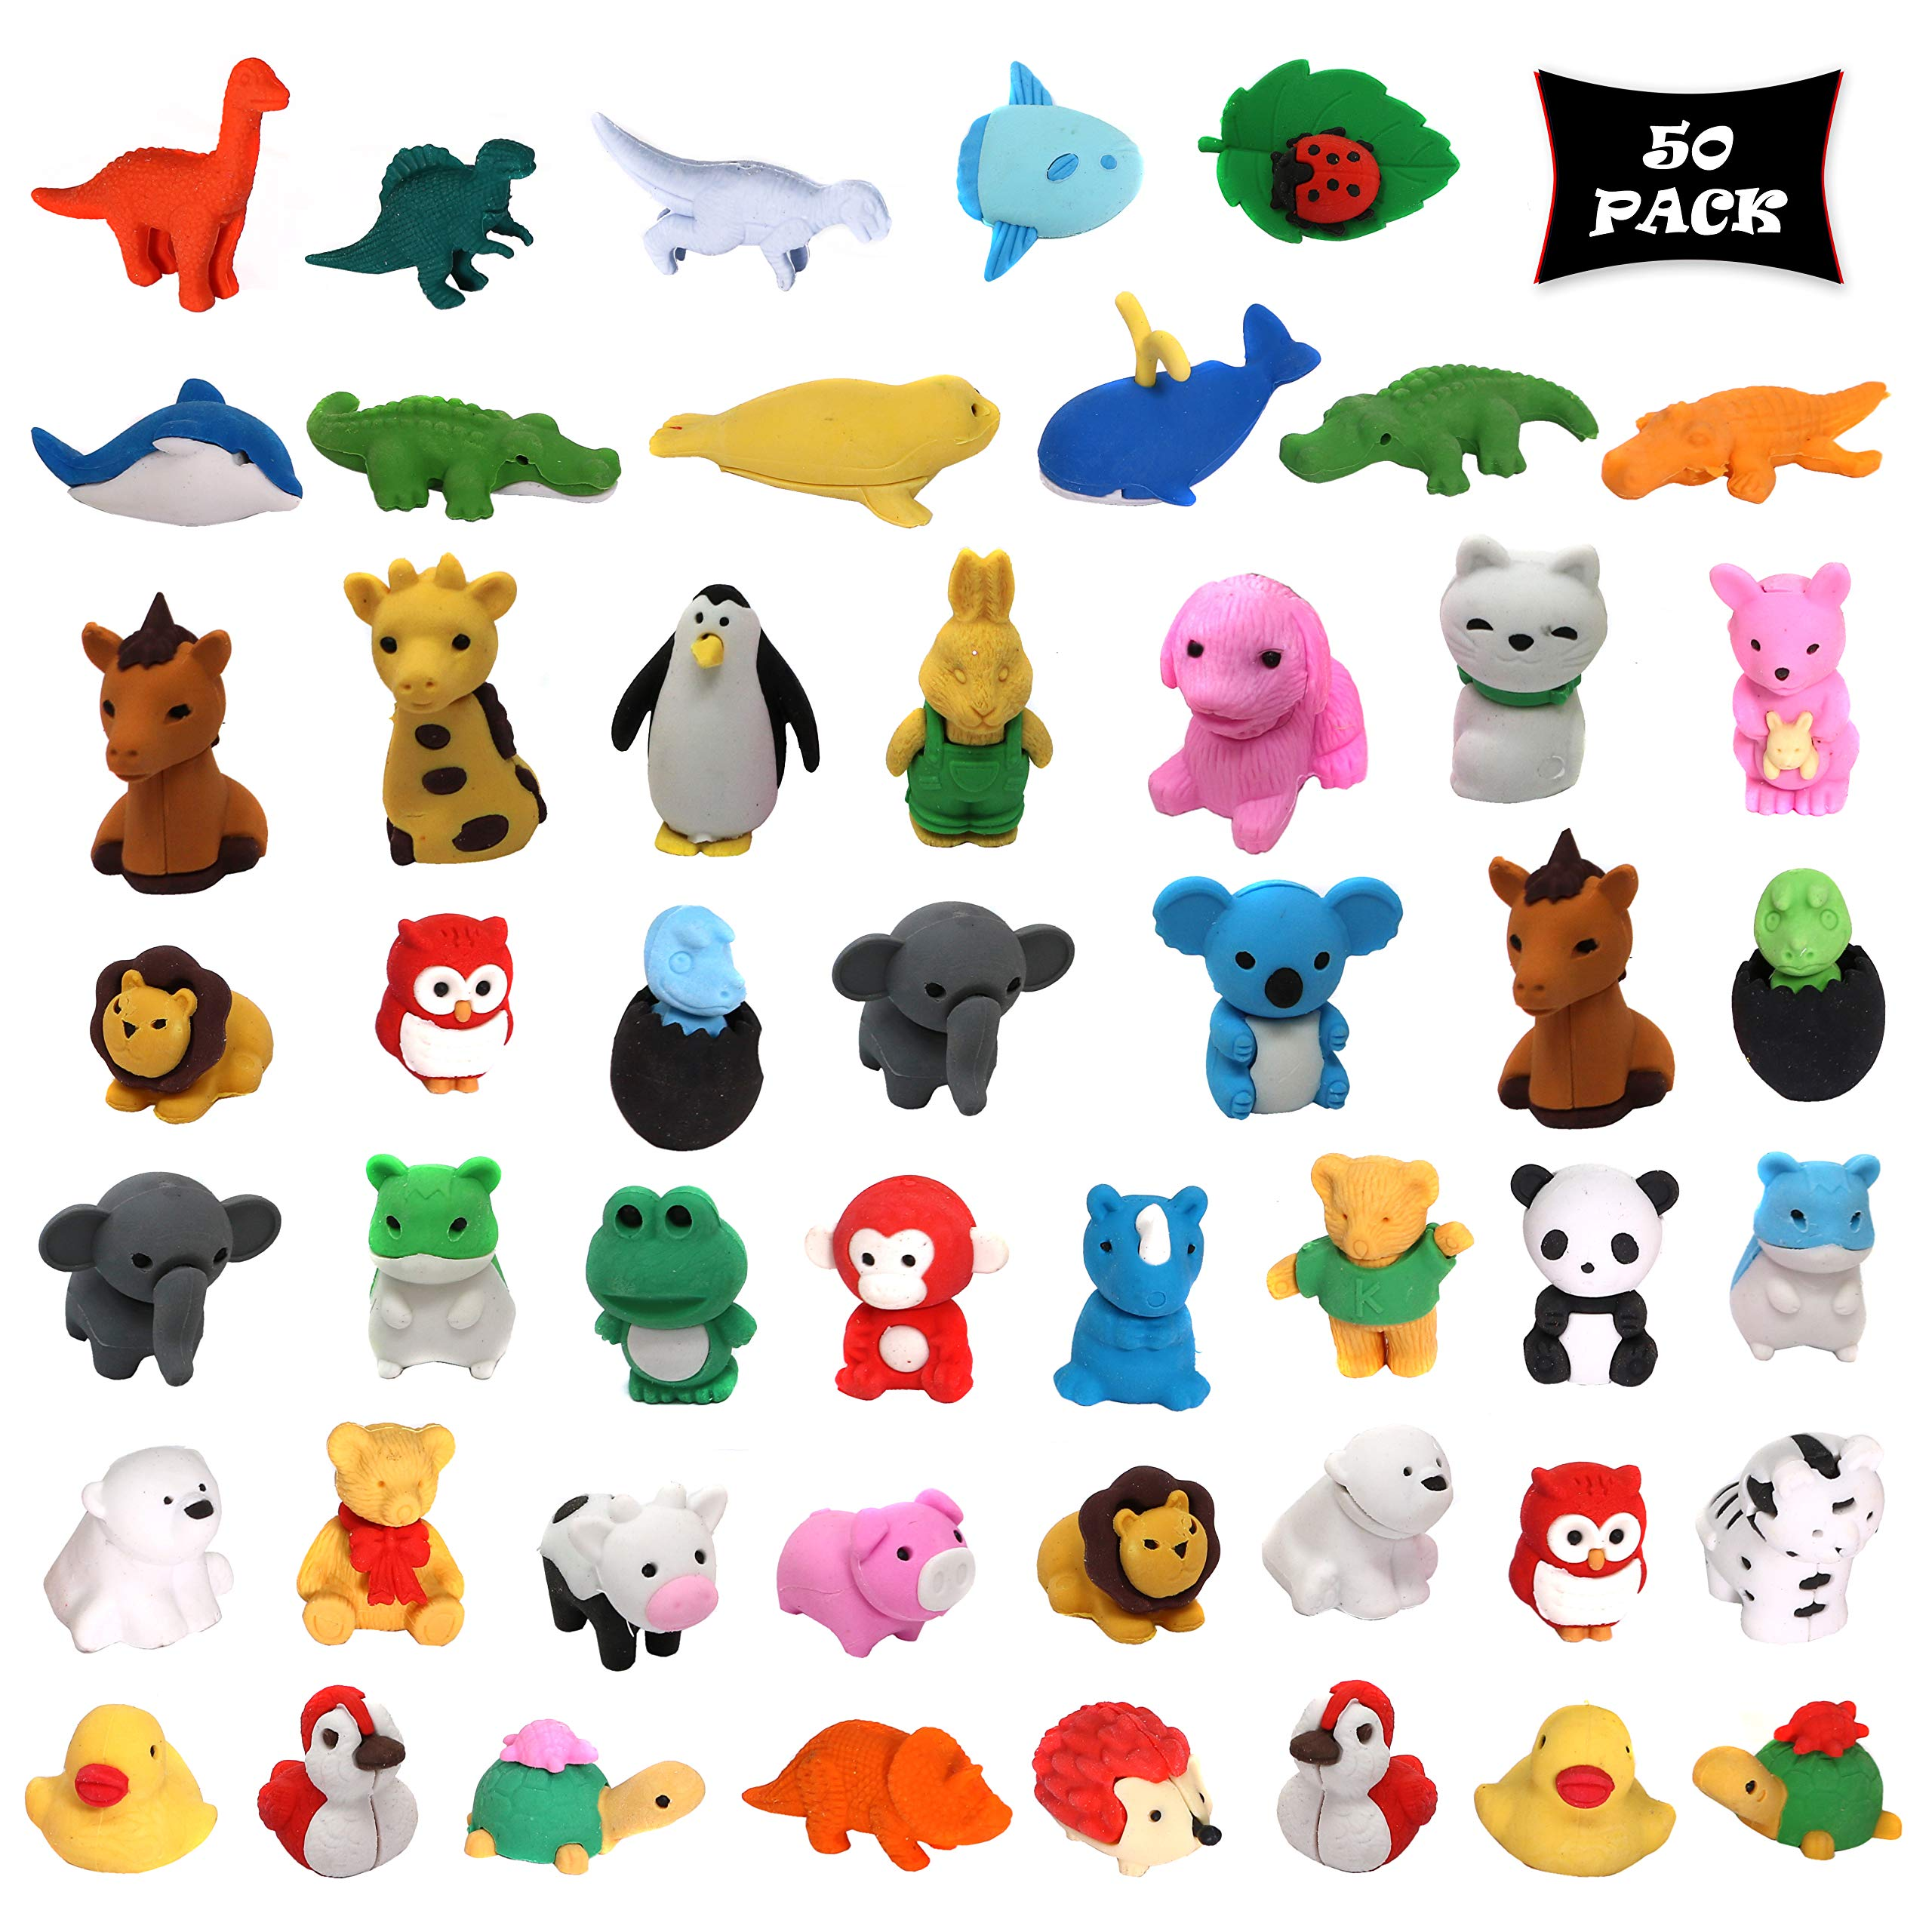 Smart Novelty Animal Erasers Kids Party Favors Classroom Rewards Prizes - Animal Puzzle Eraser Assortment - Bulk Pack Of 50 Erasers